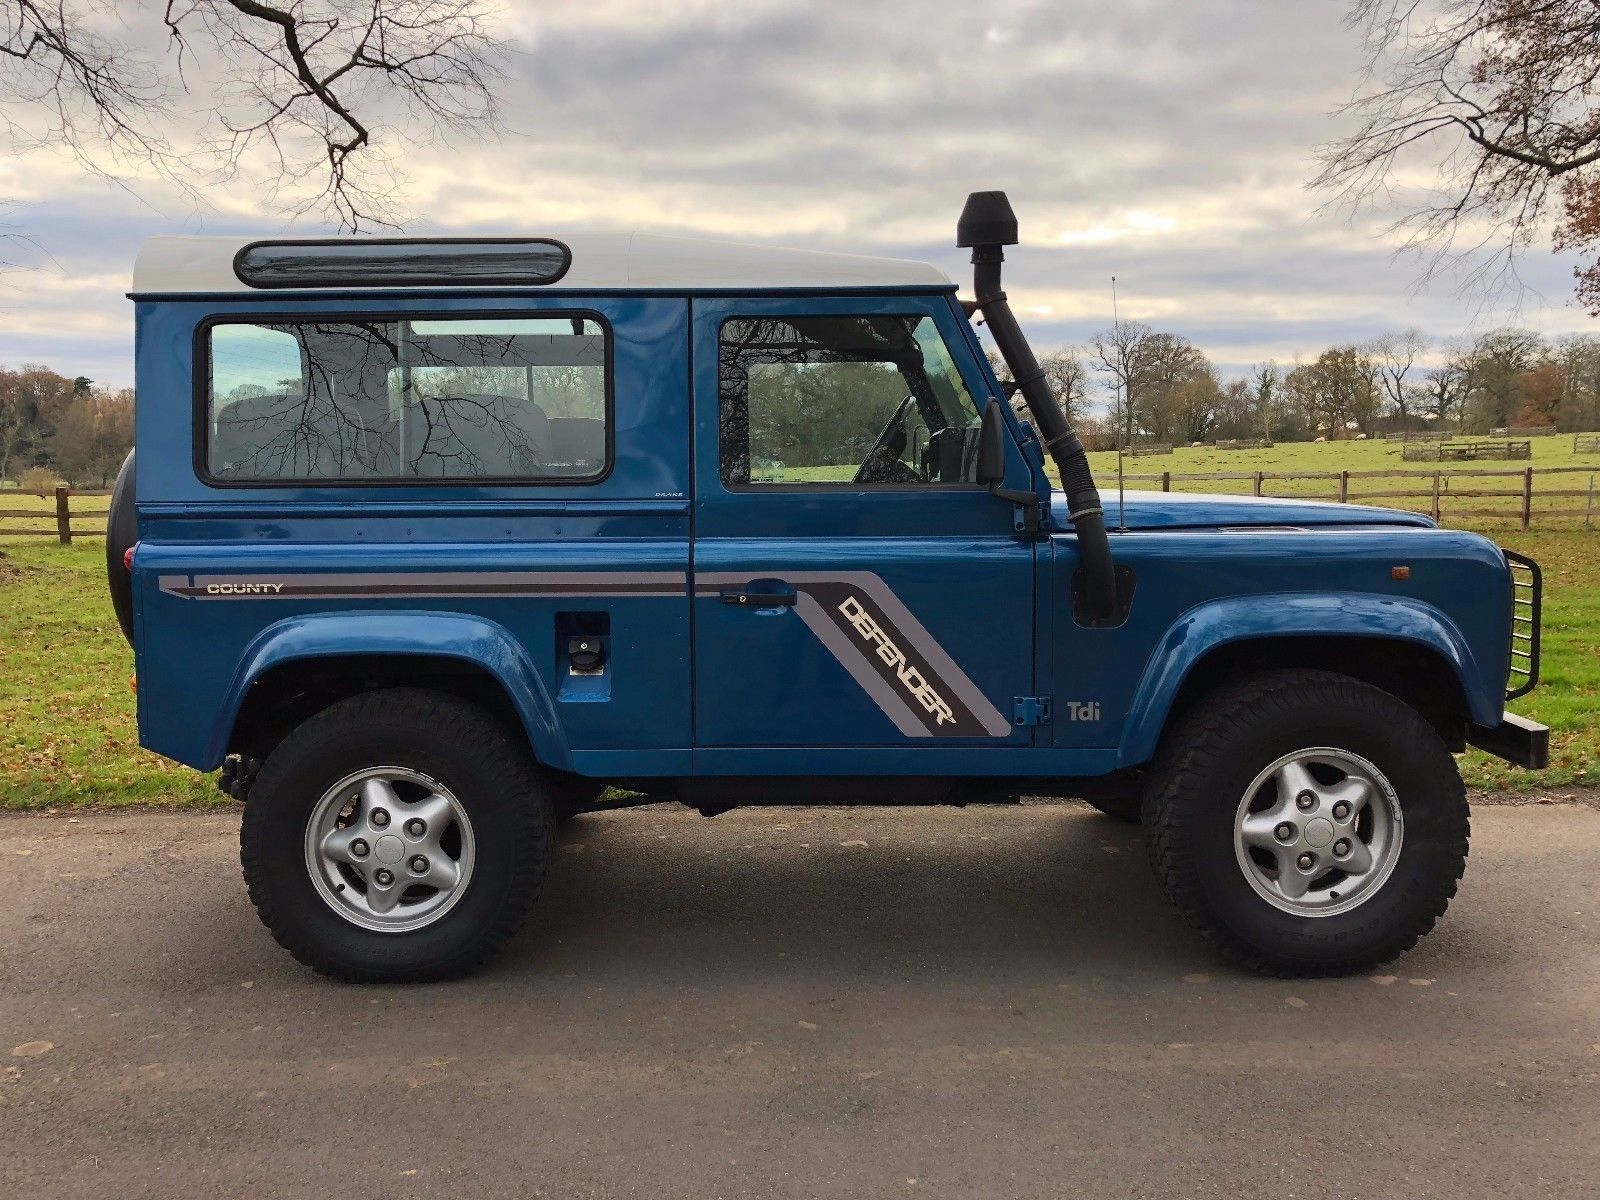 eBay: 1997 LAND ROVER DEFENDER 90 COUNTY MANUAL 190000 MILES BLUE